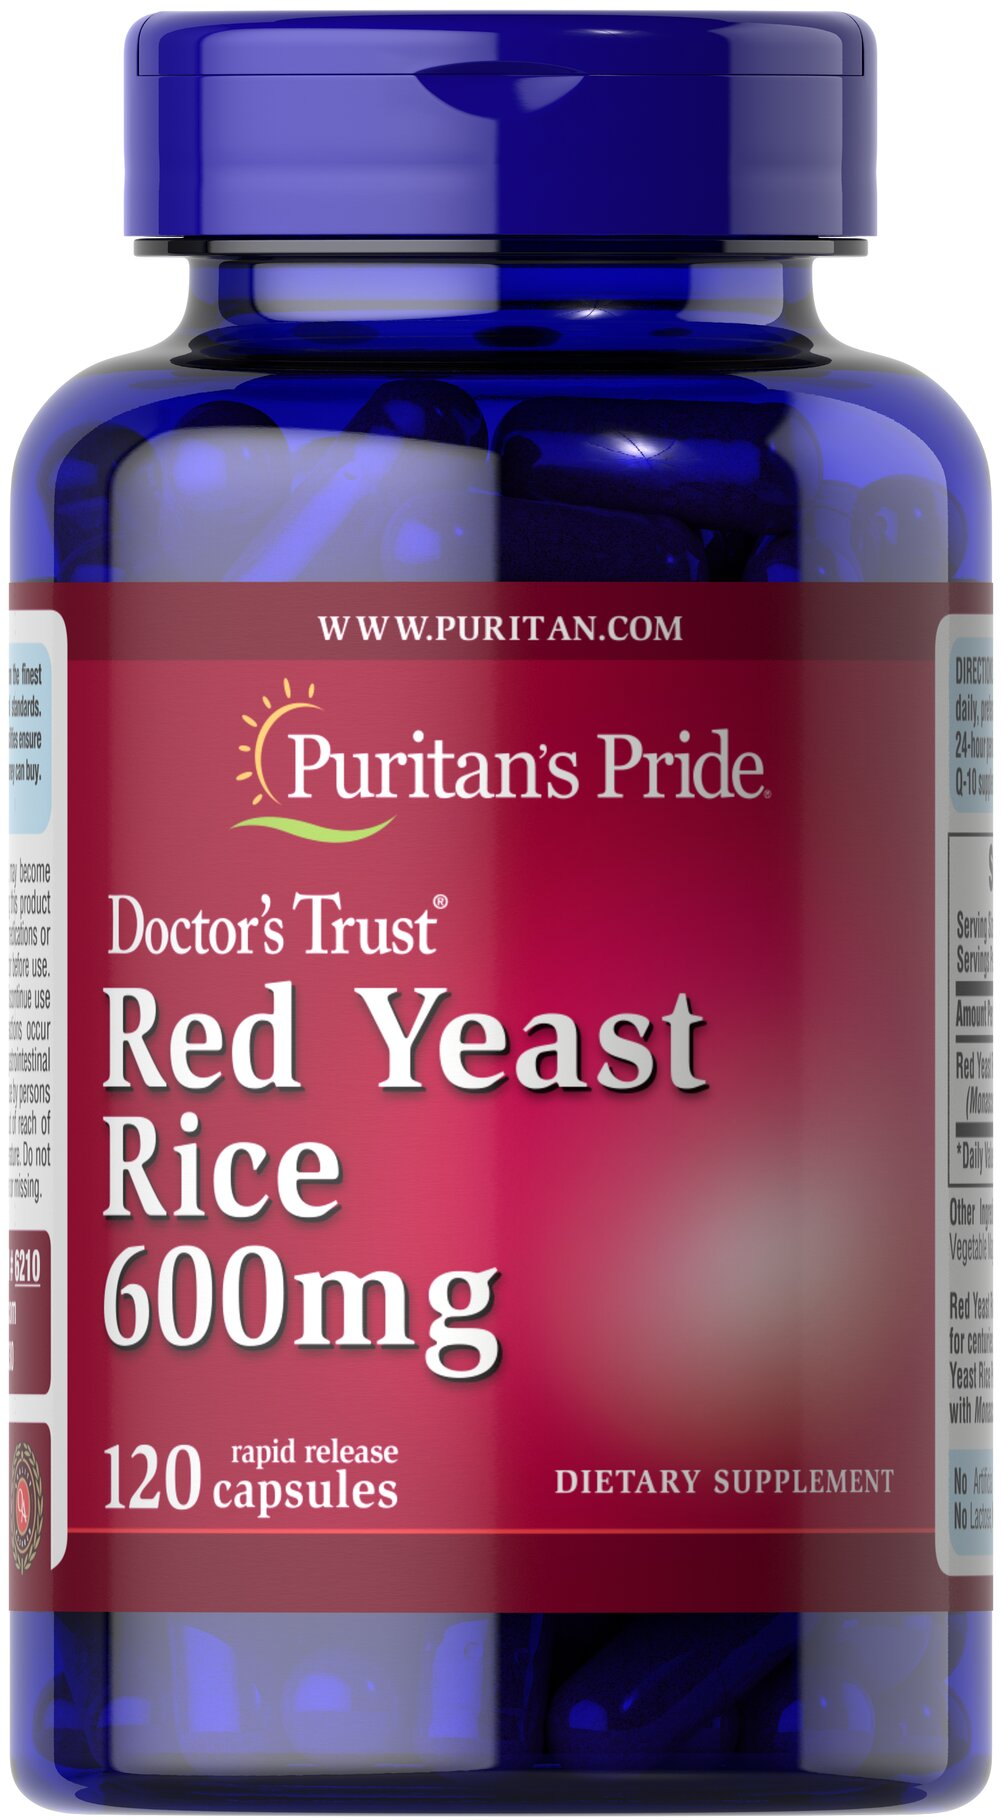 Red Yeast Rice 600 mg <p>Red Yeast Rice has been a staple food of the traditional Chinese diet for centuries. Valued as a main food source as well as for other uses, Red Yeast Rice can be a wonderful addition to your diet.**  Two capsules contain 1200 mg of Red Yeast Rice Powder from the Chinese botanical Monascus purpureus.</p> 120 Capsules 600 mg $14.51